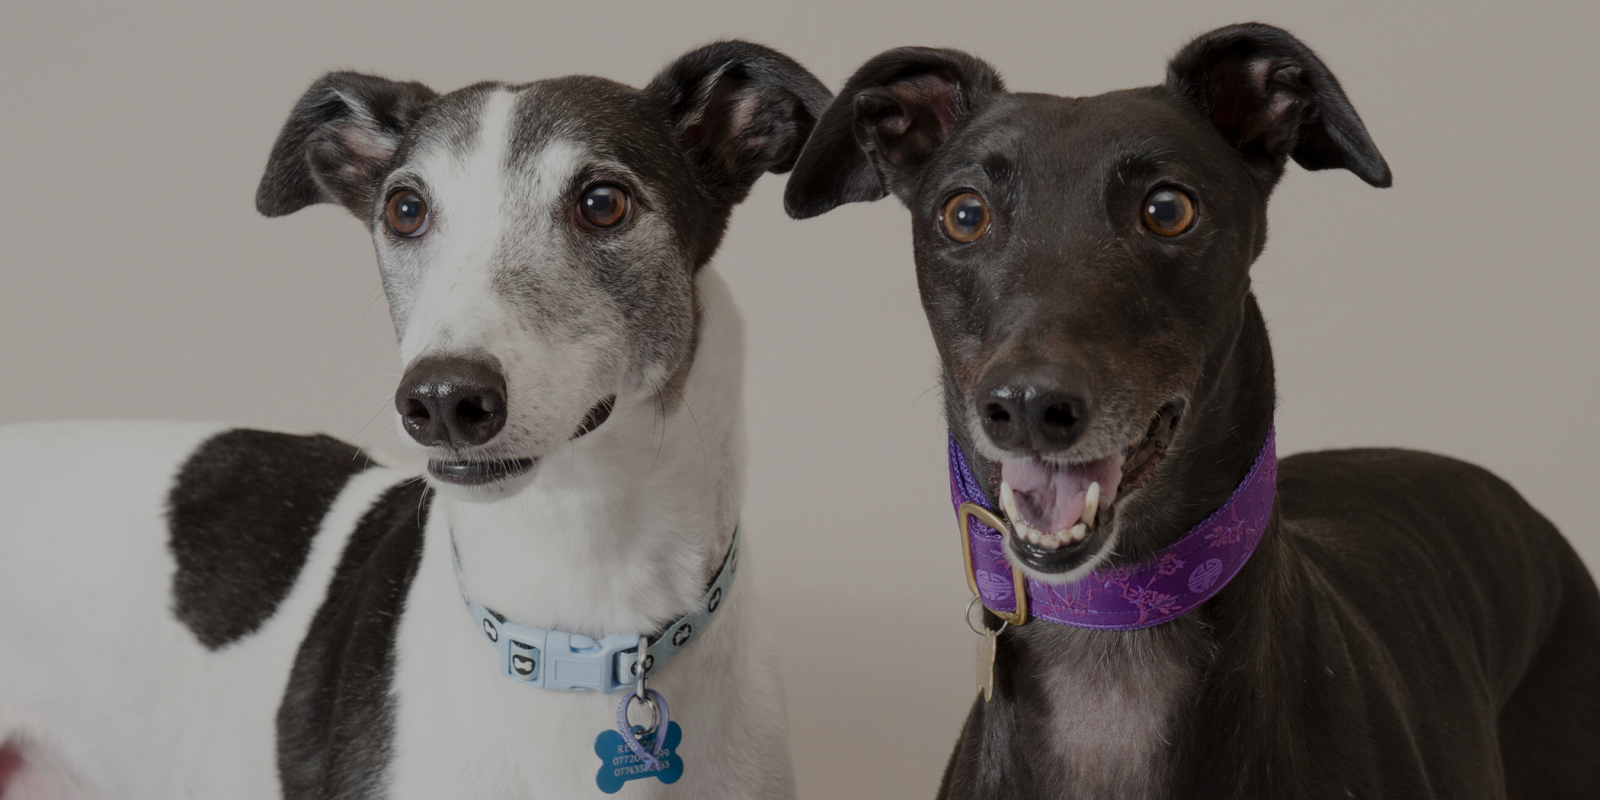 Professional portrait of two greyhounds